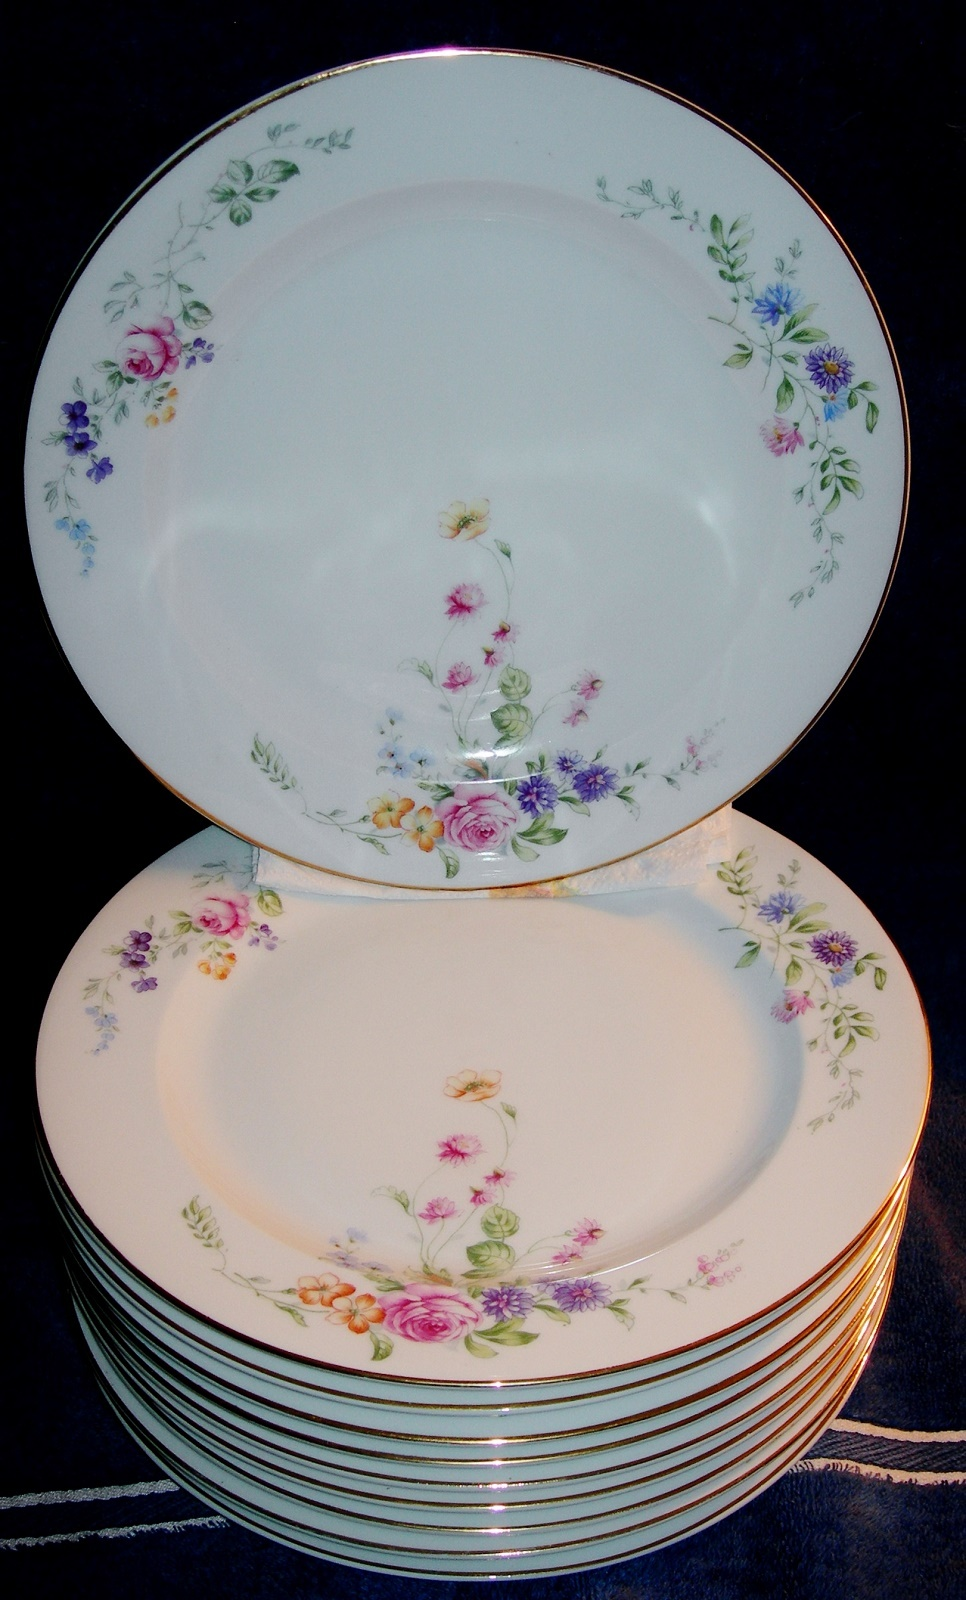 10 Hutschenreuther Bavaria Plates \u0026 13-1/2\  Platter Beautiful Floral Swag Spray - $35.00 & Hutschenreuther Selb Plates: 9 listings